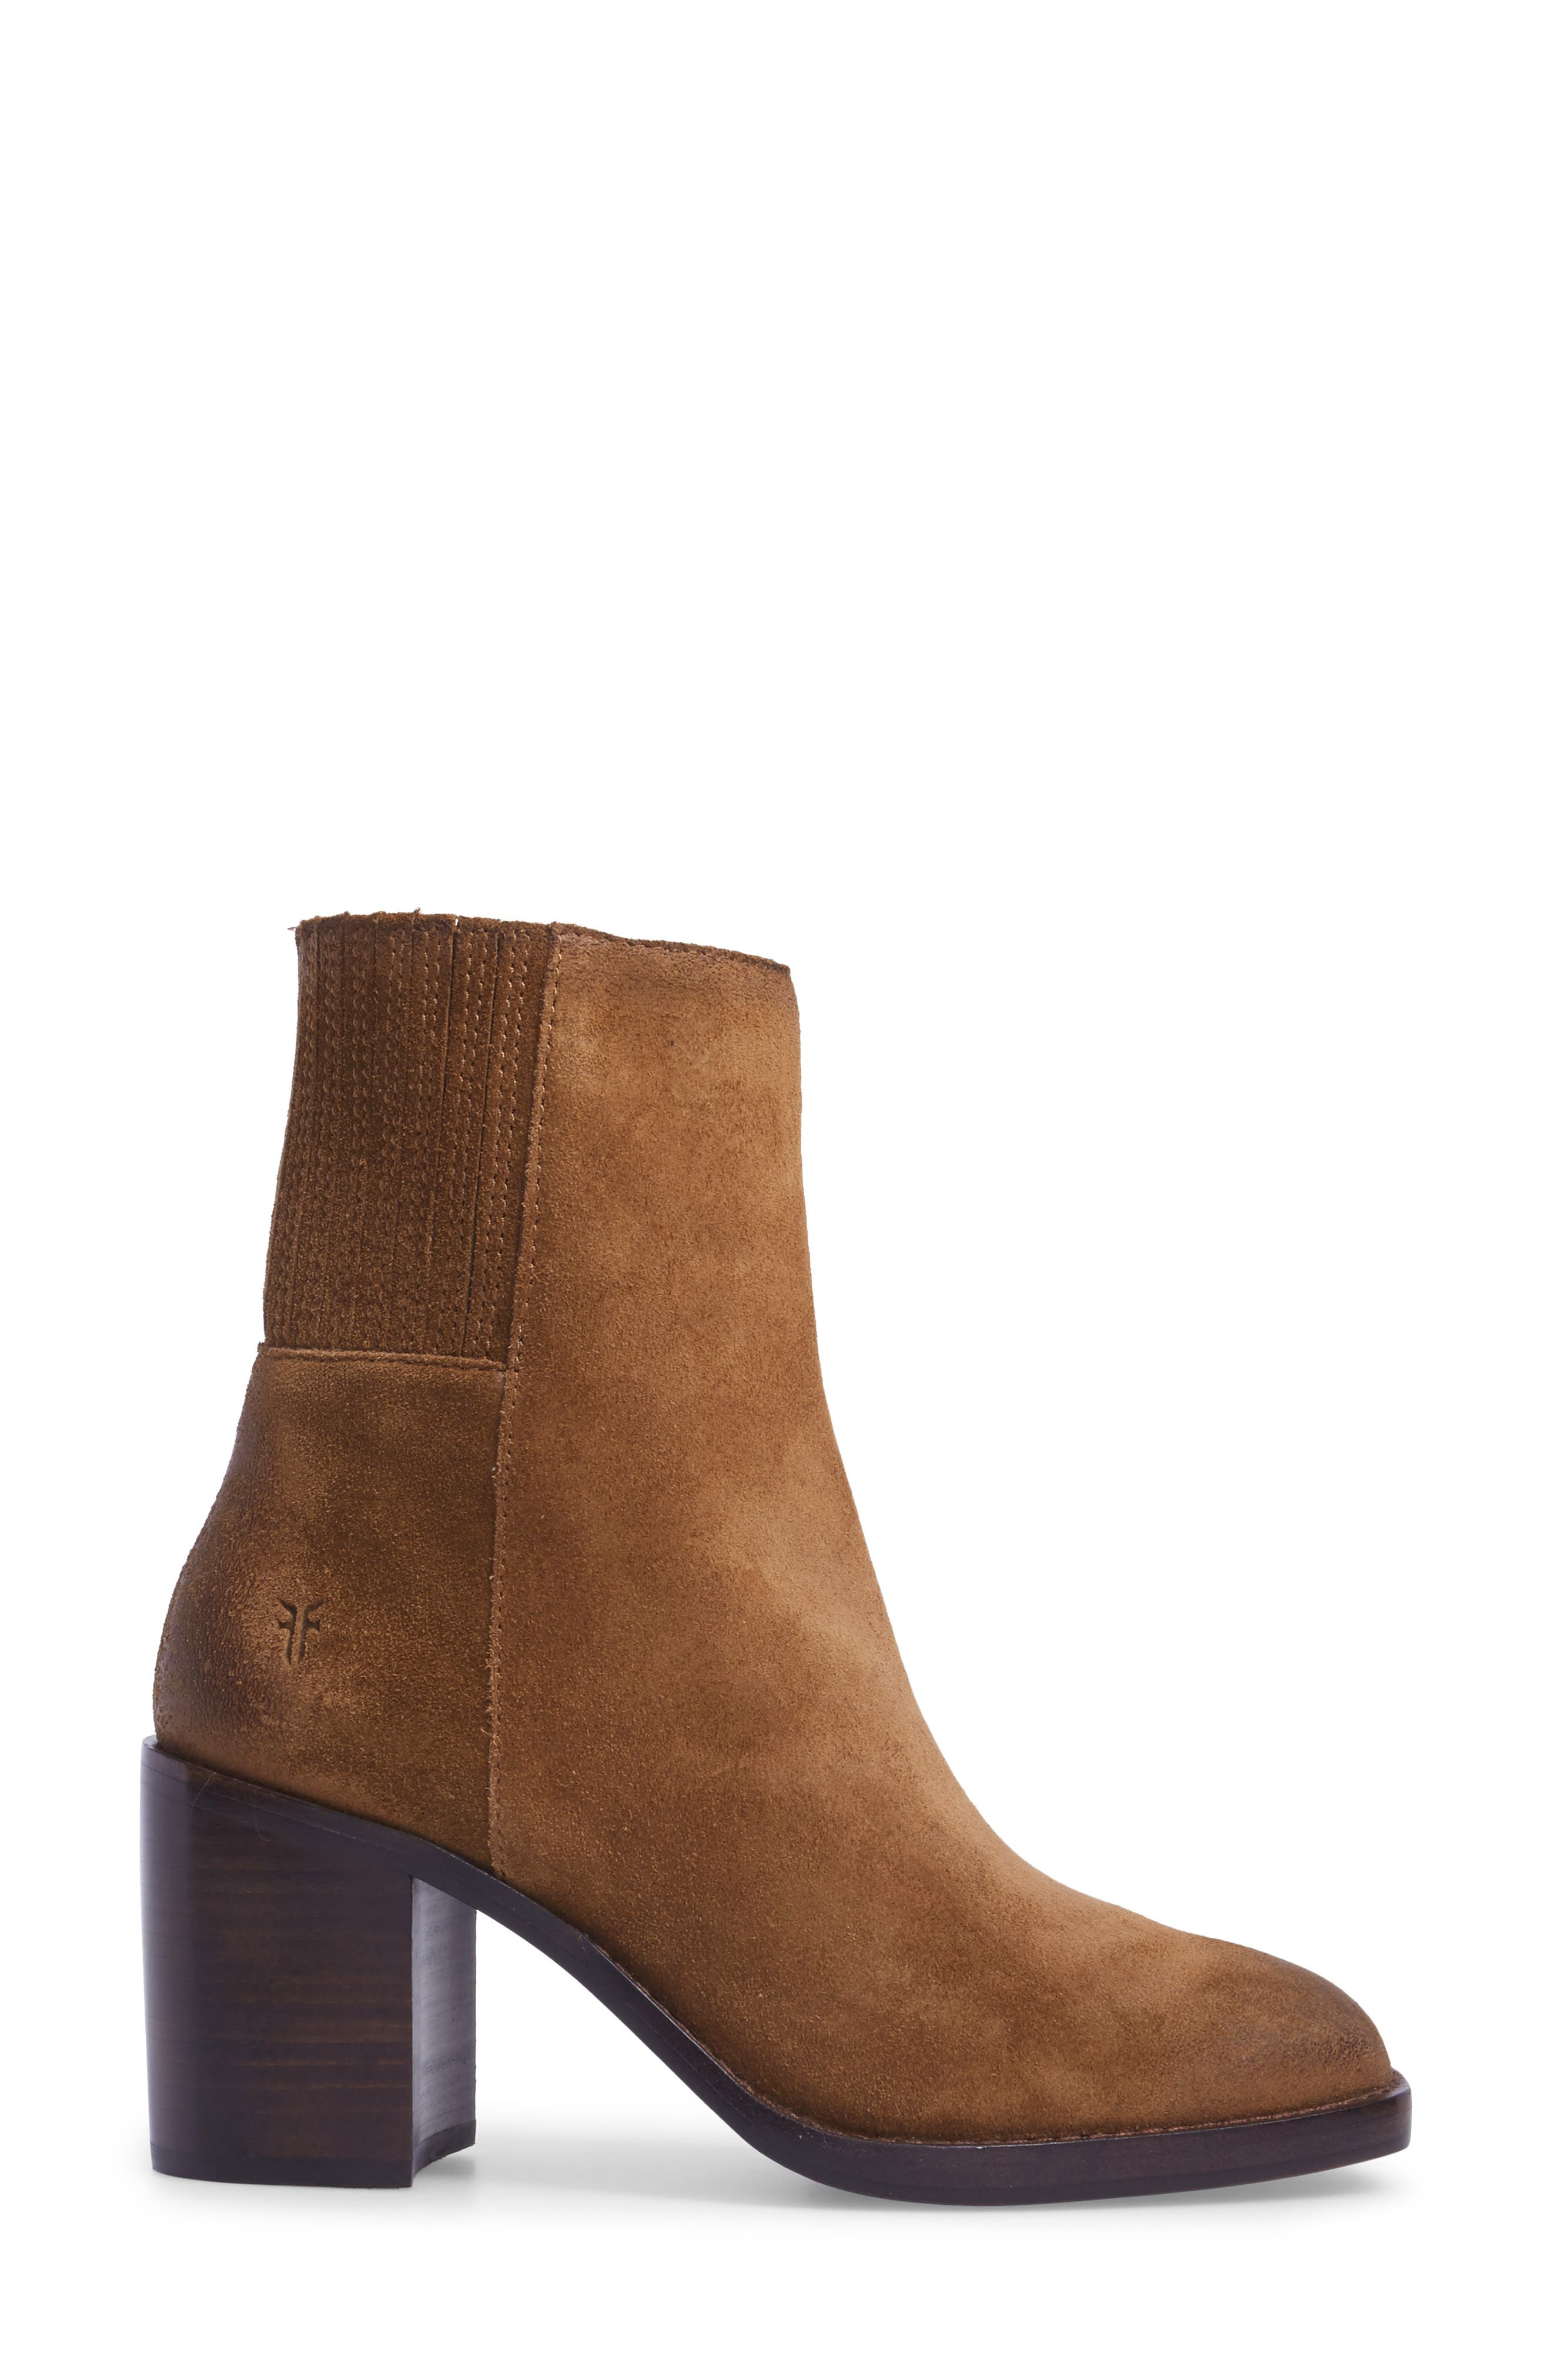 Pia Boot,                             Alternate thumbnail 3, color,                             Chestnut Suede